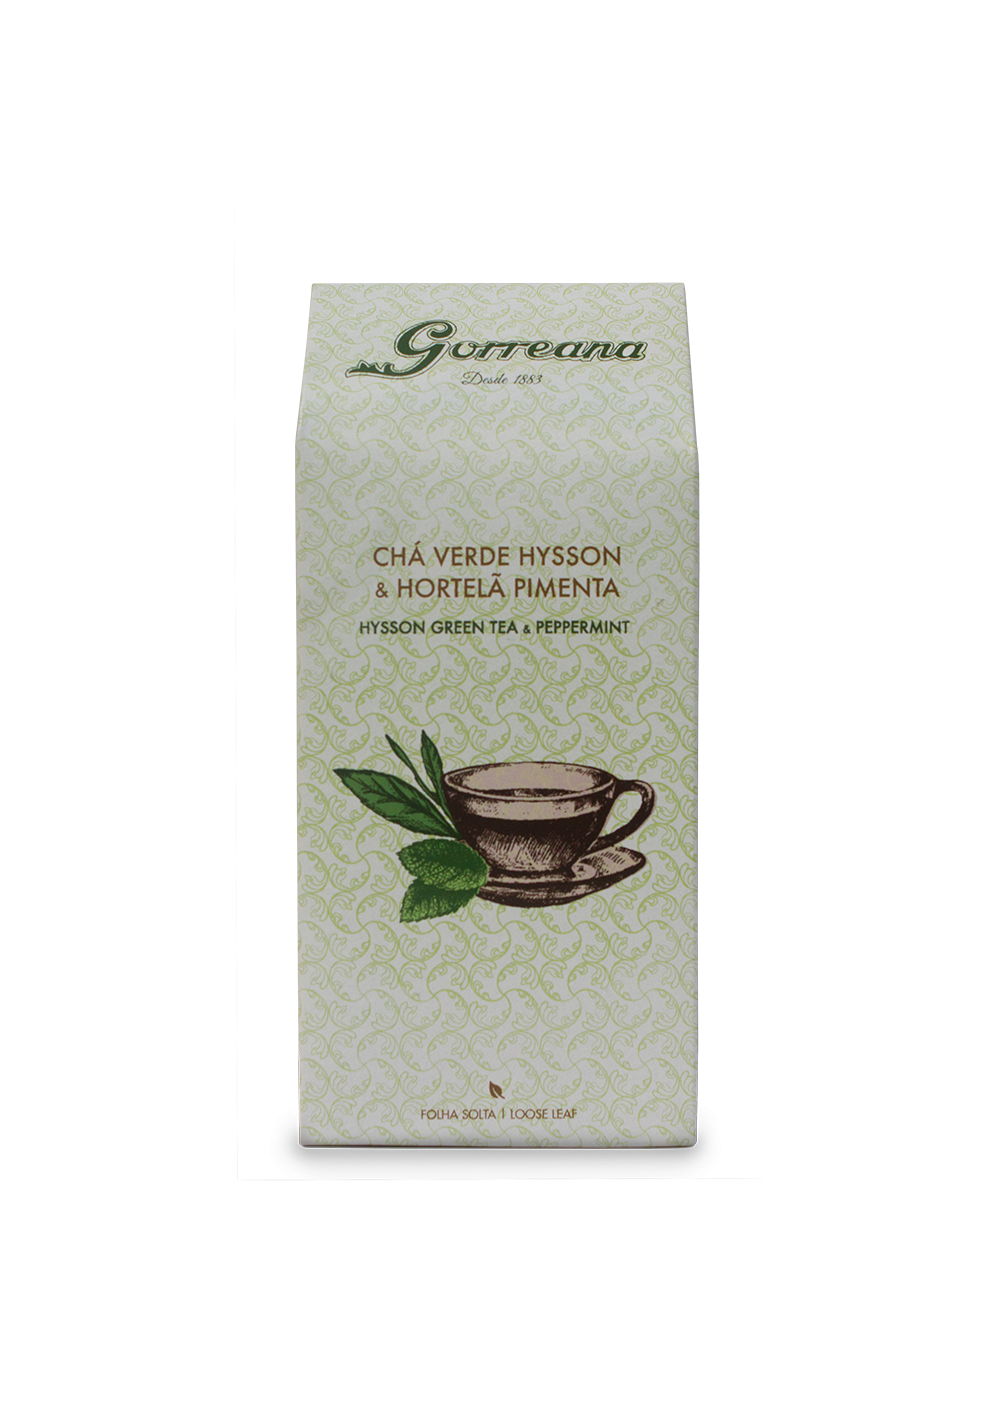 Hysson Green tea & Peppermint (loose leaf) 80gr